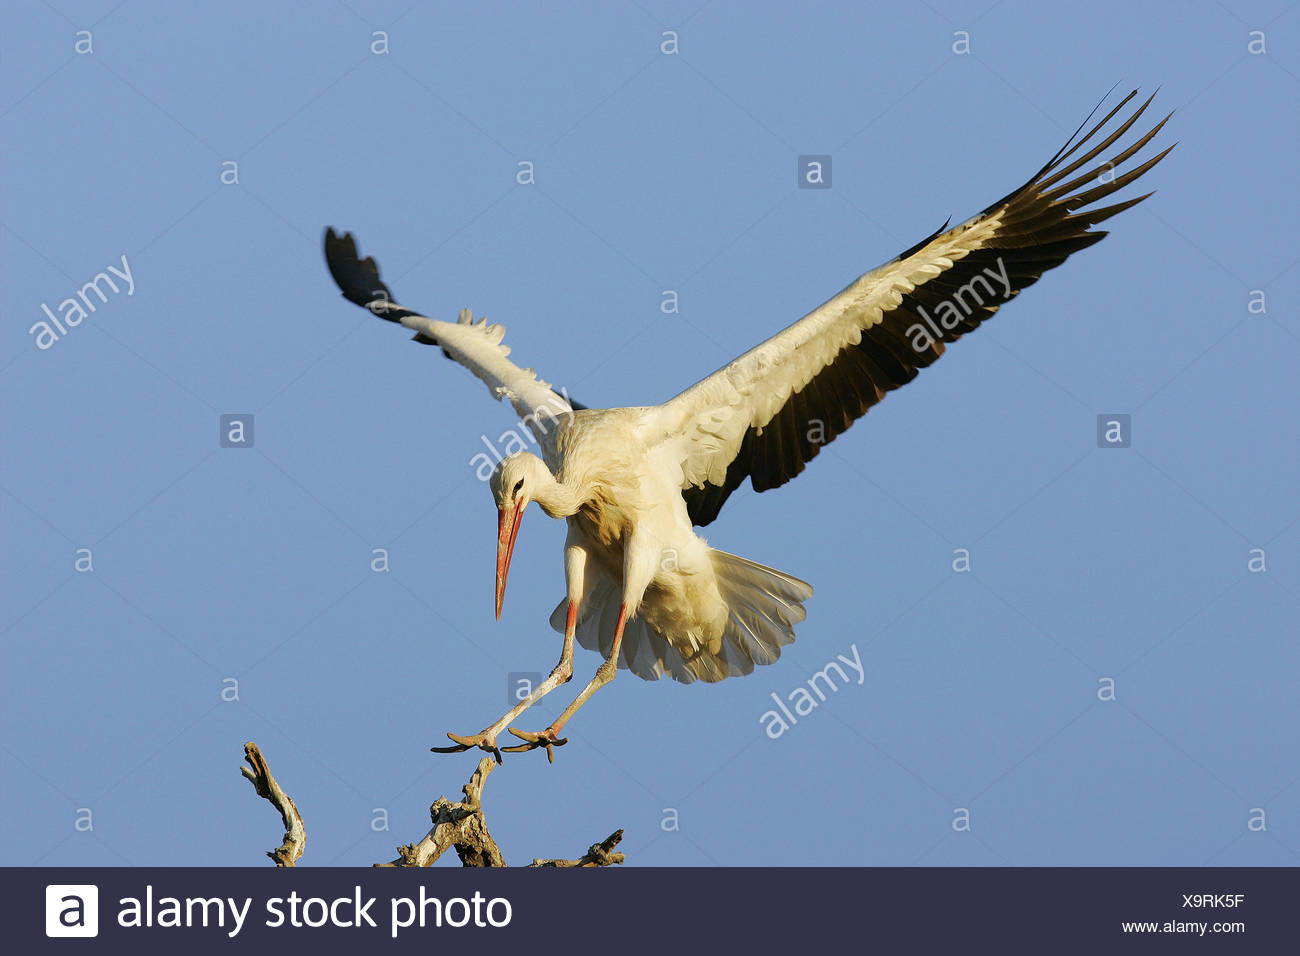 Stork (Ciconia ciconia) flying Stock Photo